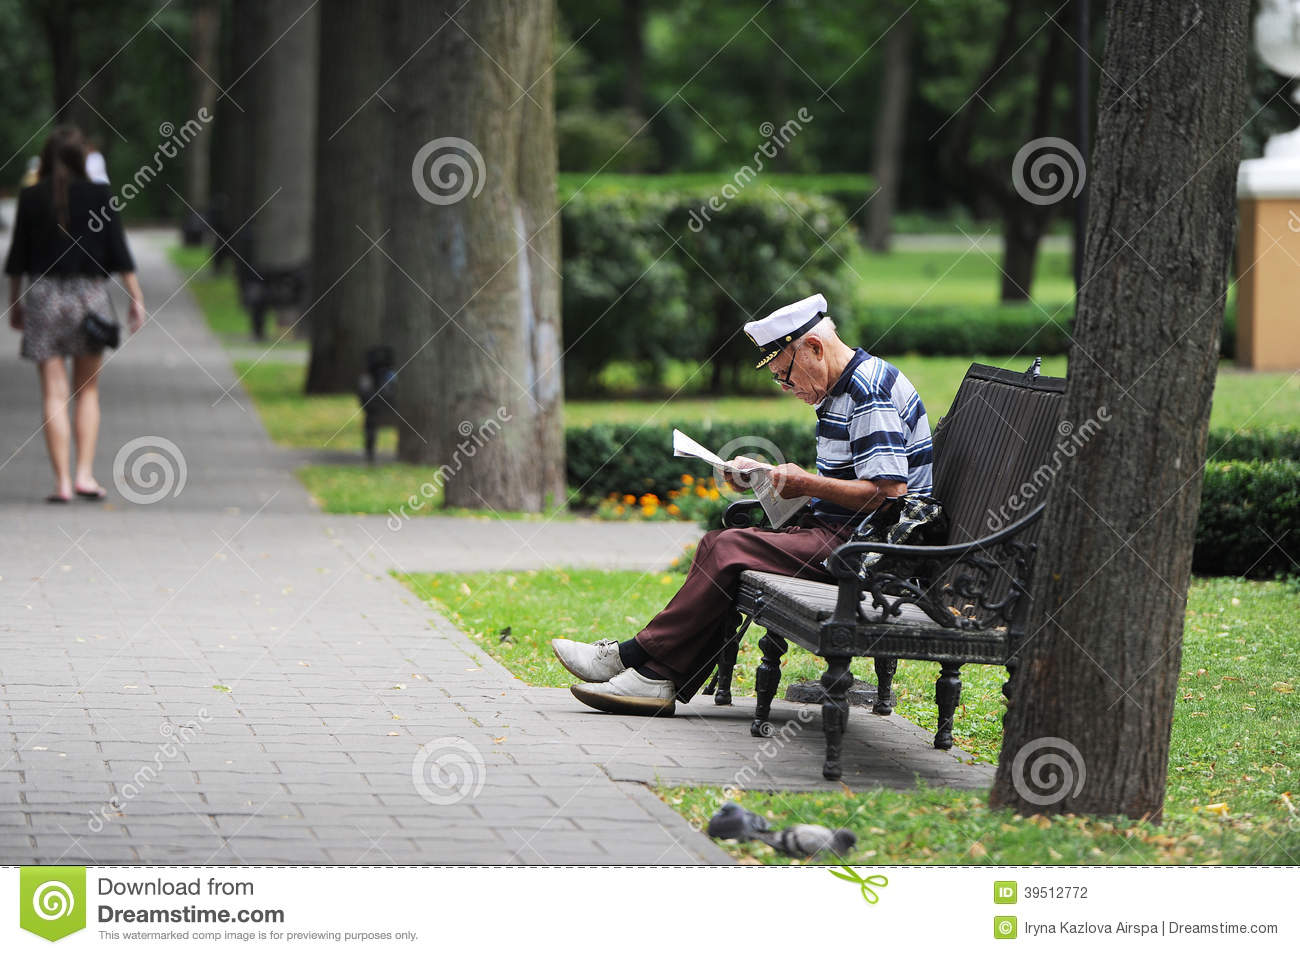 The reading grandfather